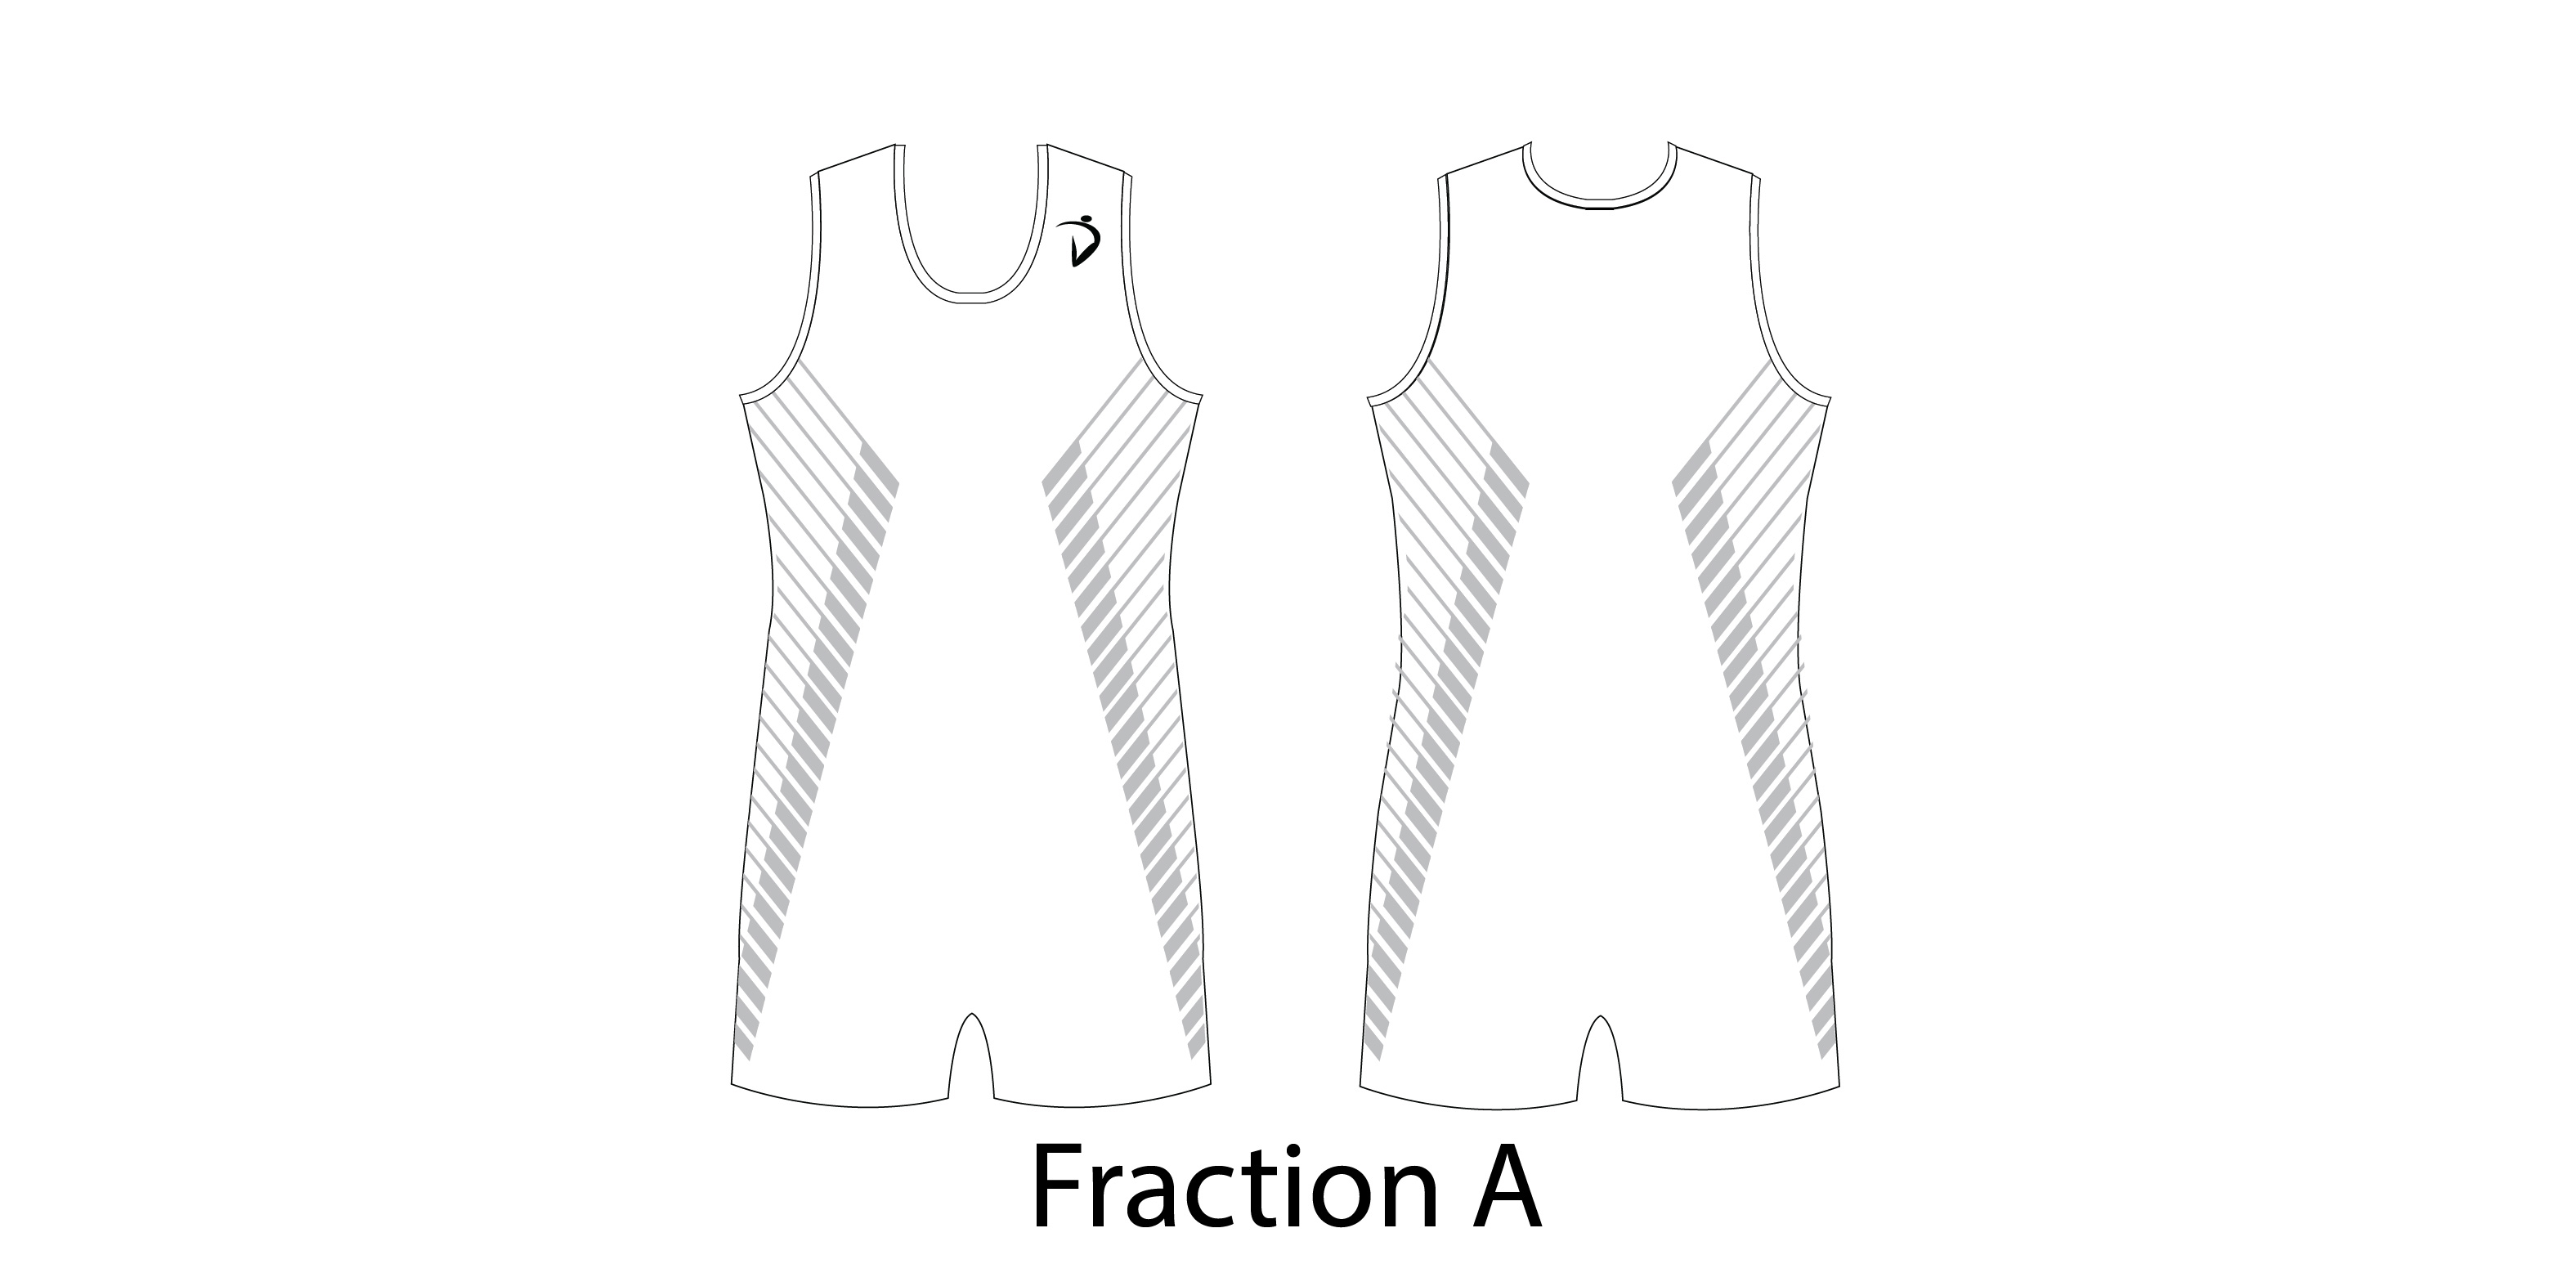 Fraction A